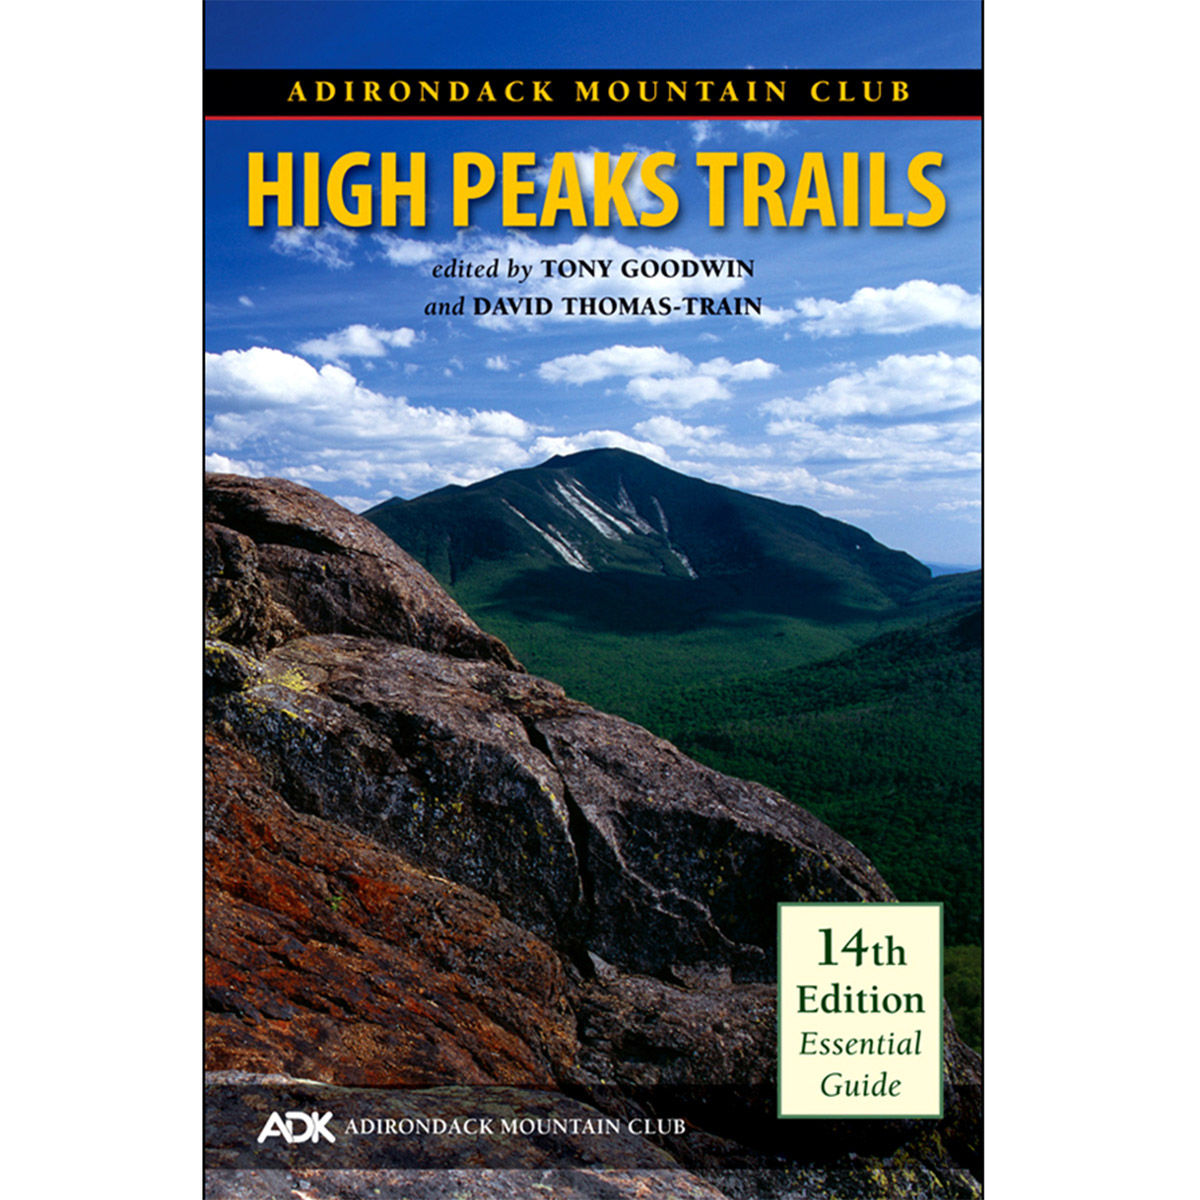 Adirondack Mountain Club High Peaks Trails